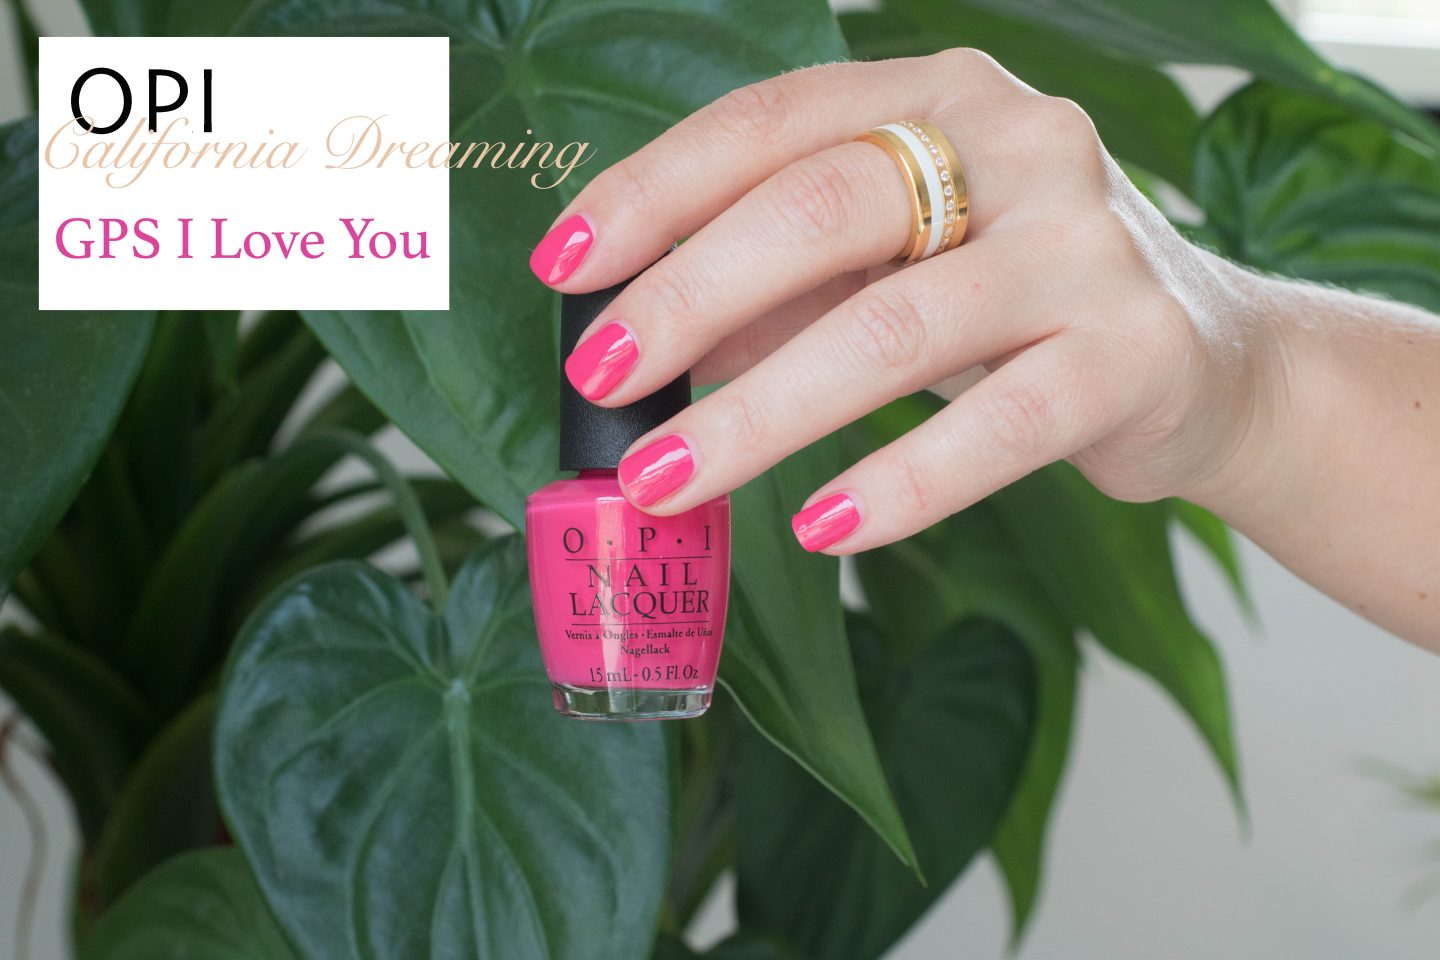 OPI California Dreaming GPS I Love You